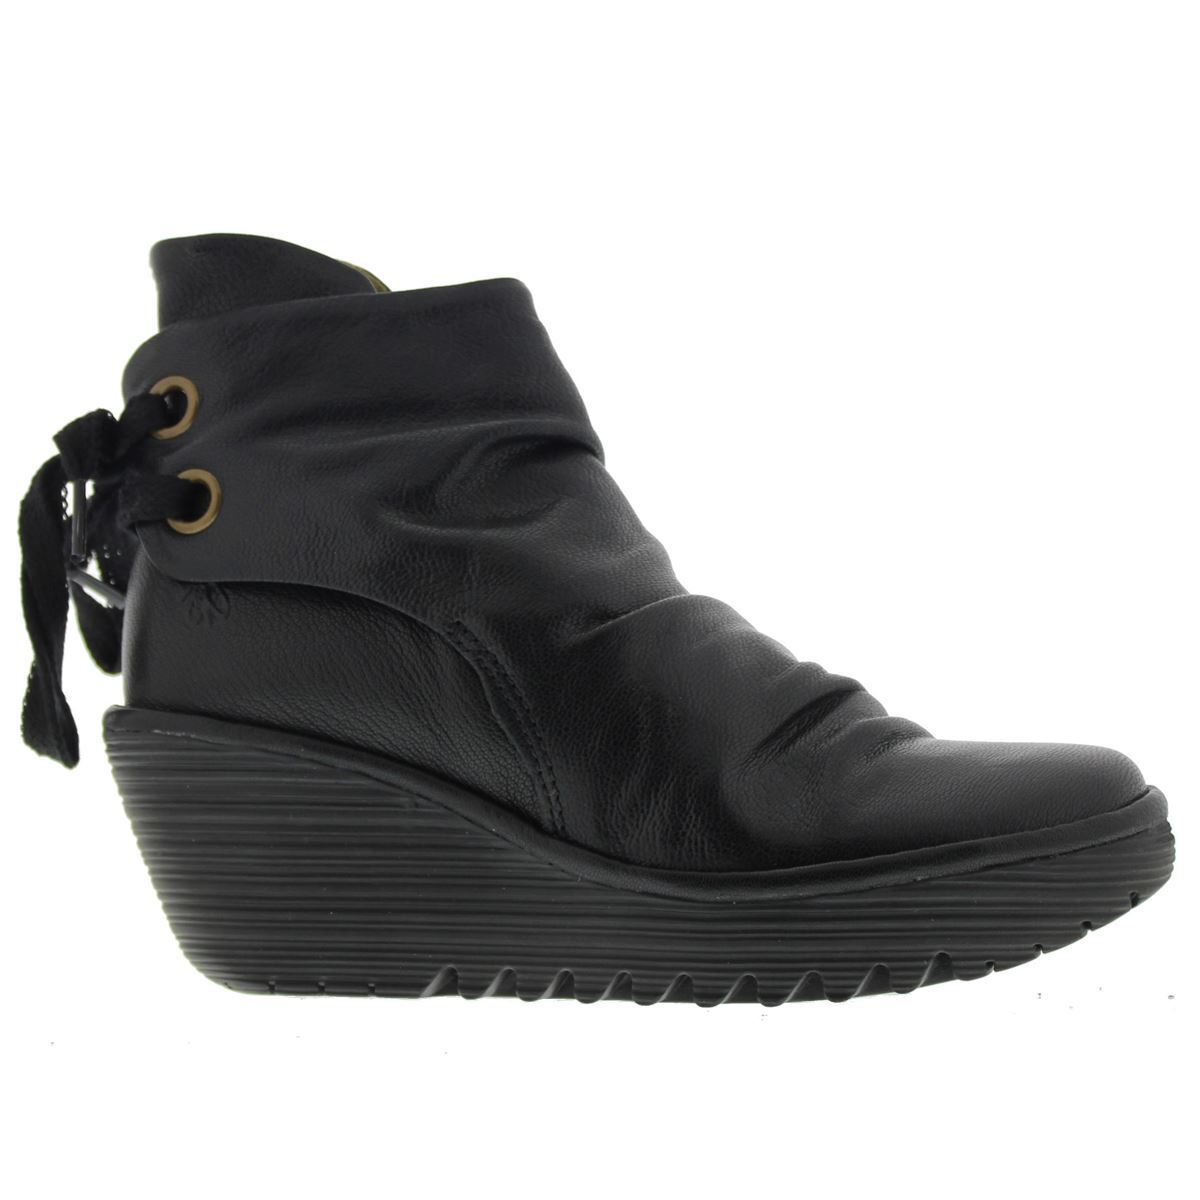 Men's/Women's Fly London Yama Black Womens Boots Practical and economical Primary quality Export